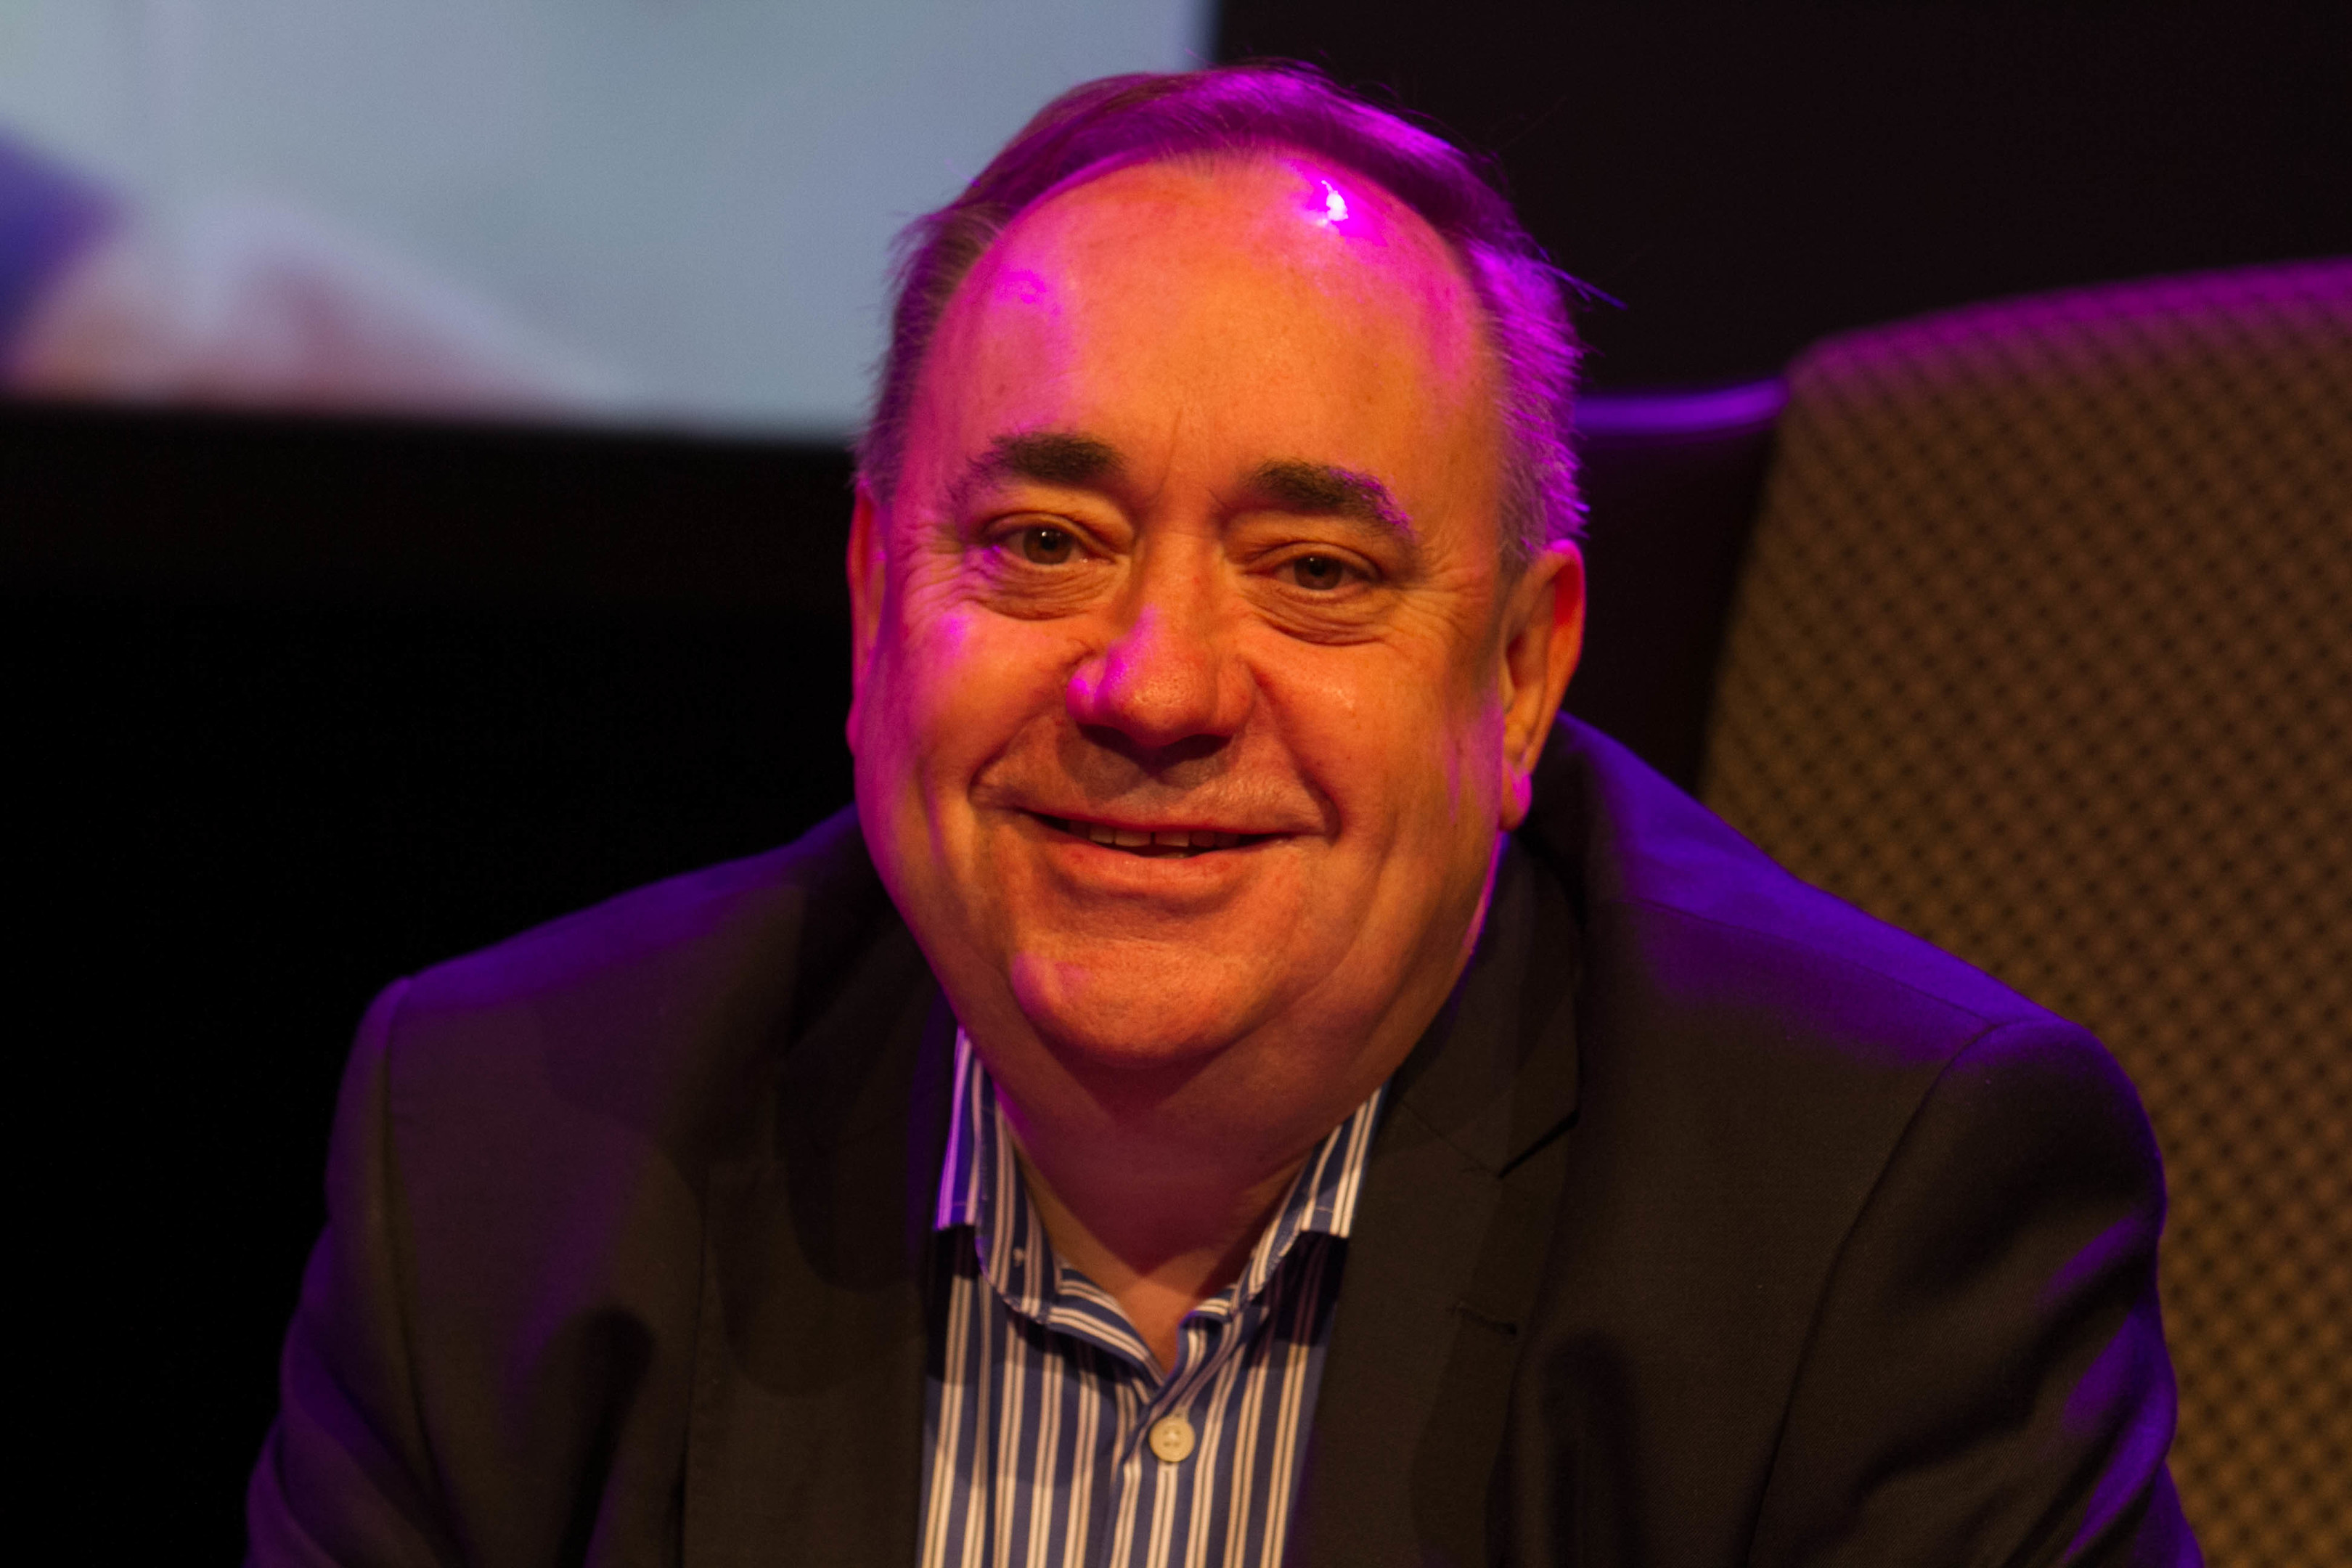 Alex Salmond has stated that if Nicola Sturgeon had been able to foresee the snap election she would not have announced plans for indyref2 (Sunday Post)